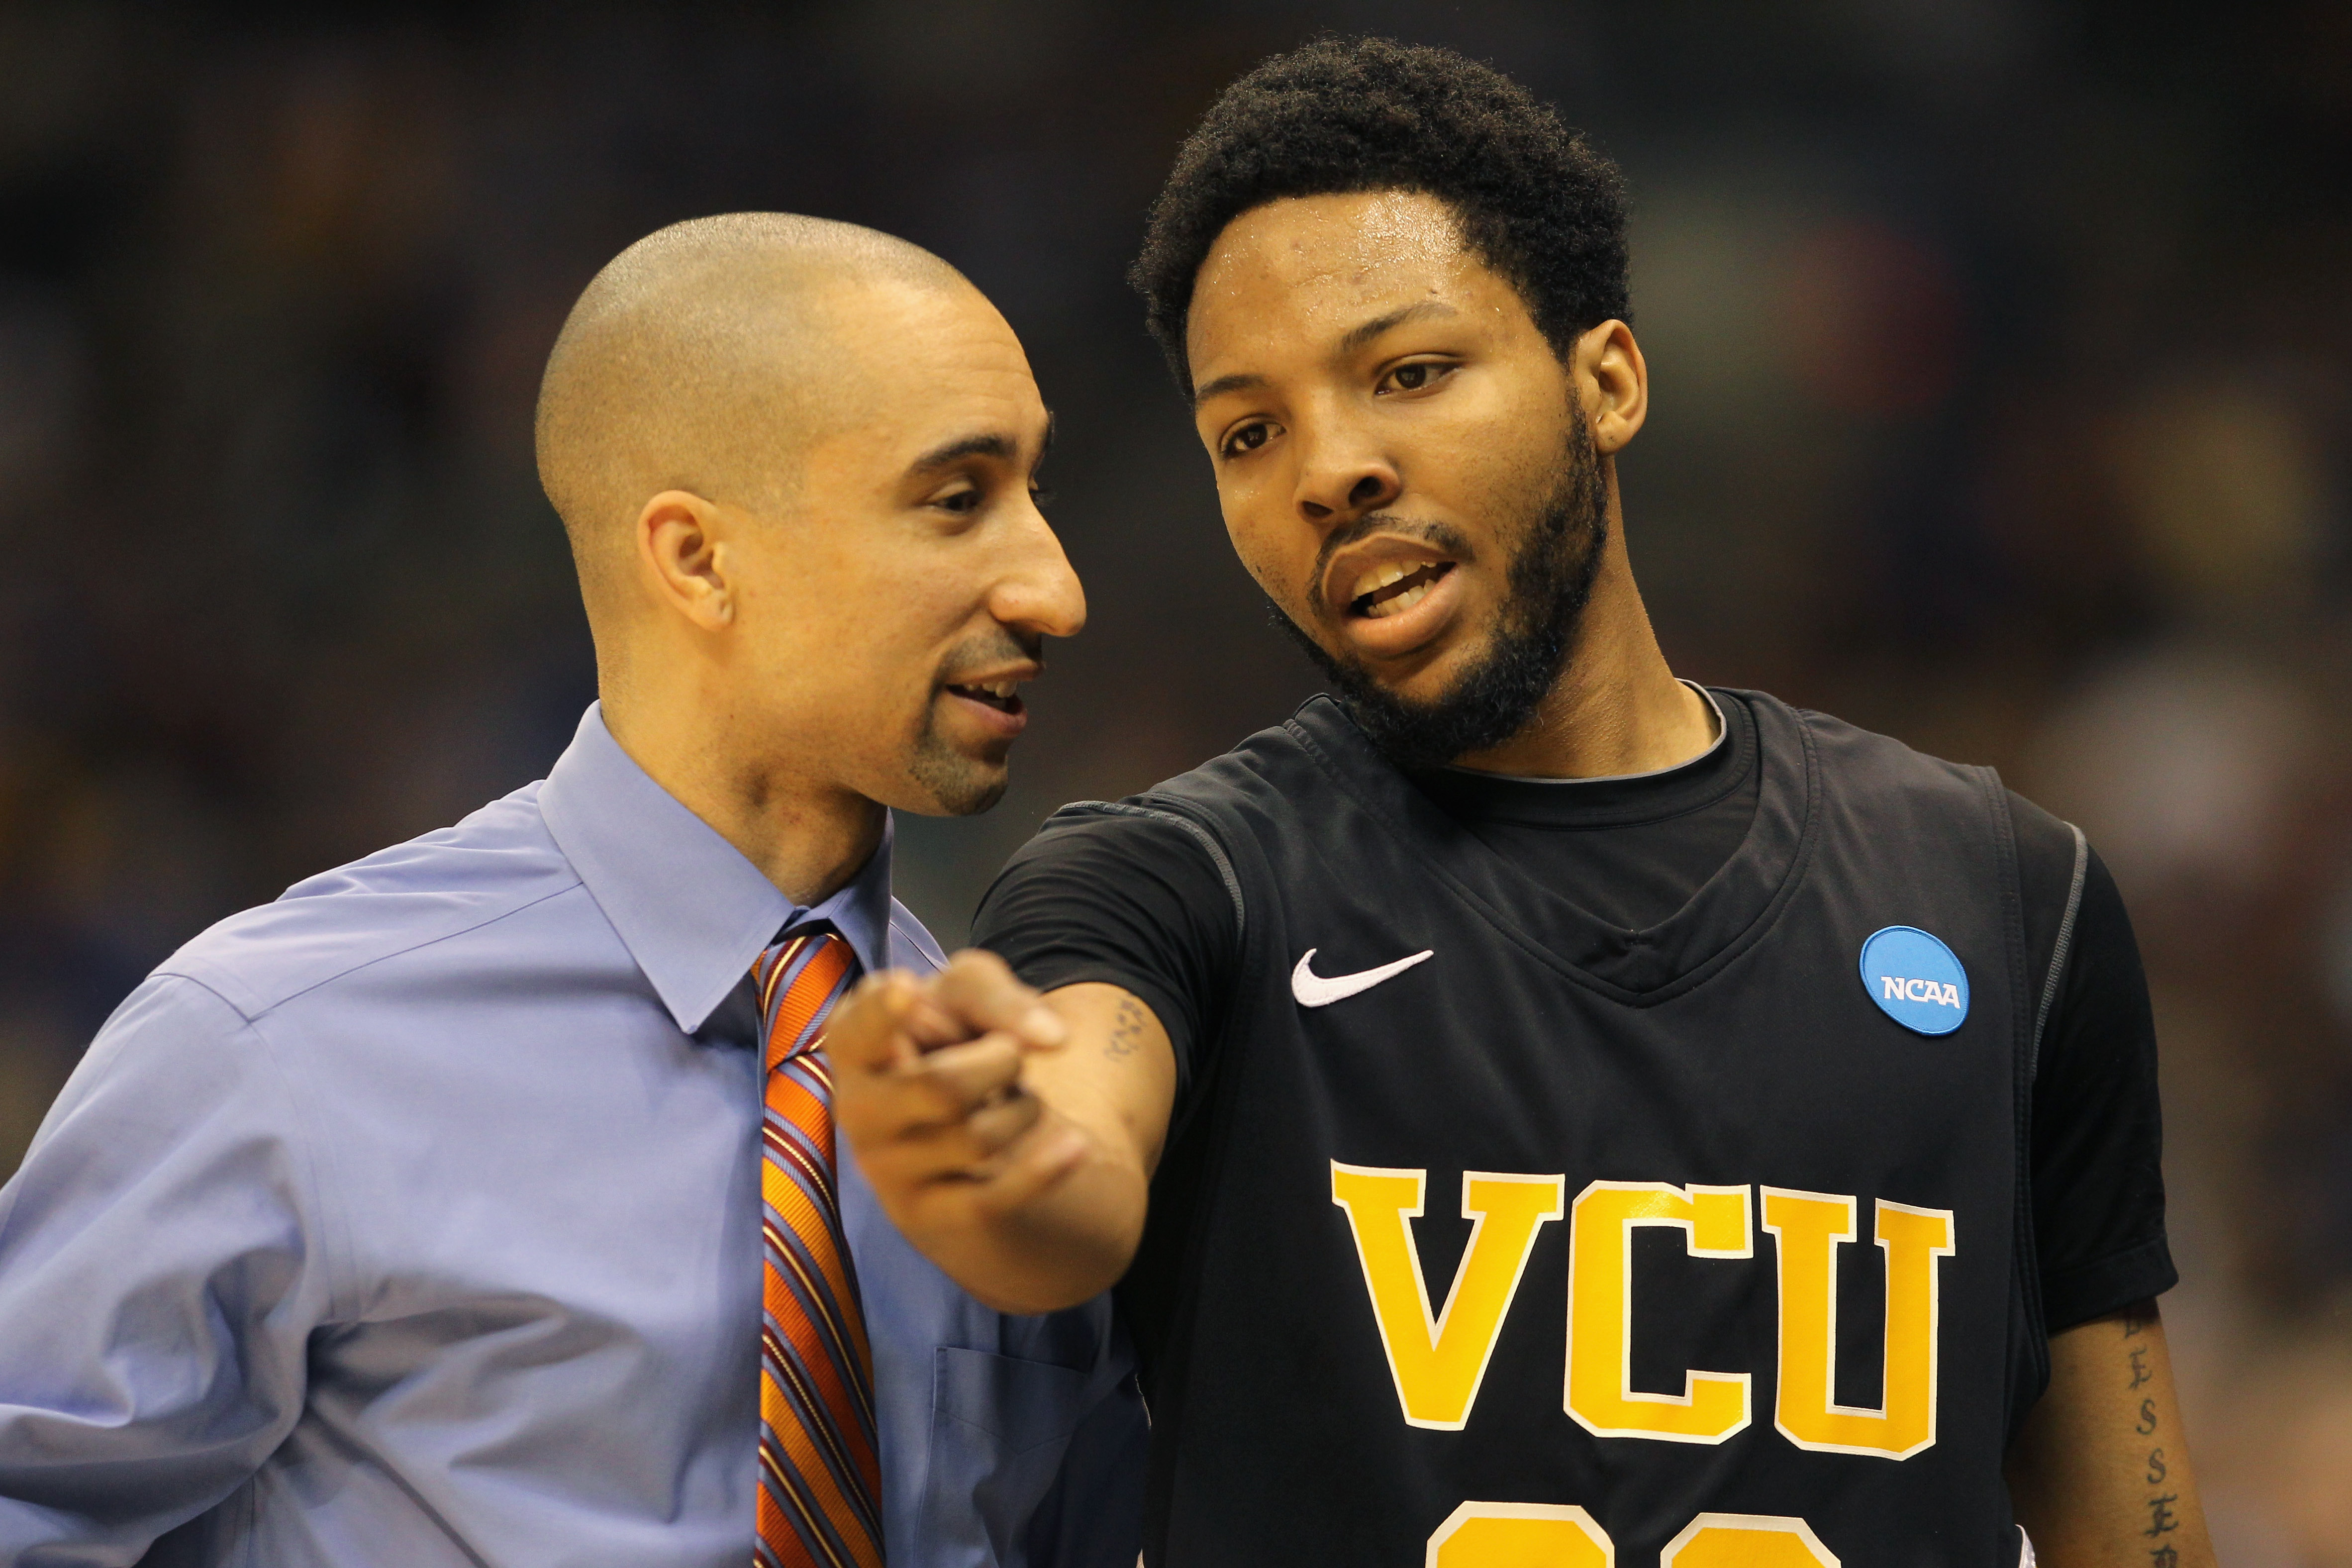 SAN ANTONIO, TX - MARCH 27:  Head coach Shaka Smart and Brandon Rozzell #32 of the Virginia Commonwealth Rams talk during the southwest regional final of the 2011 NCAA men's basketball tournament against the Kansas Jayhawks at the Alamodome on March 27, 2